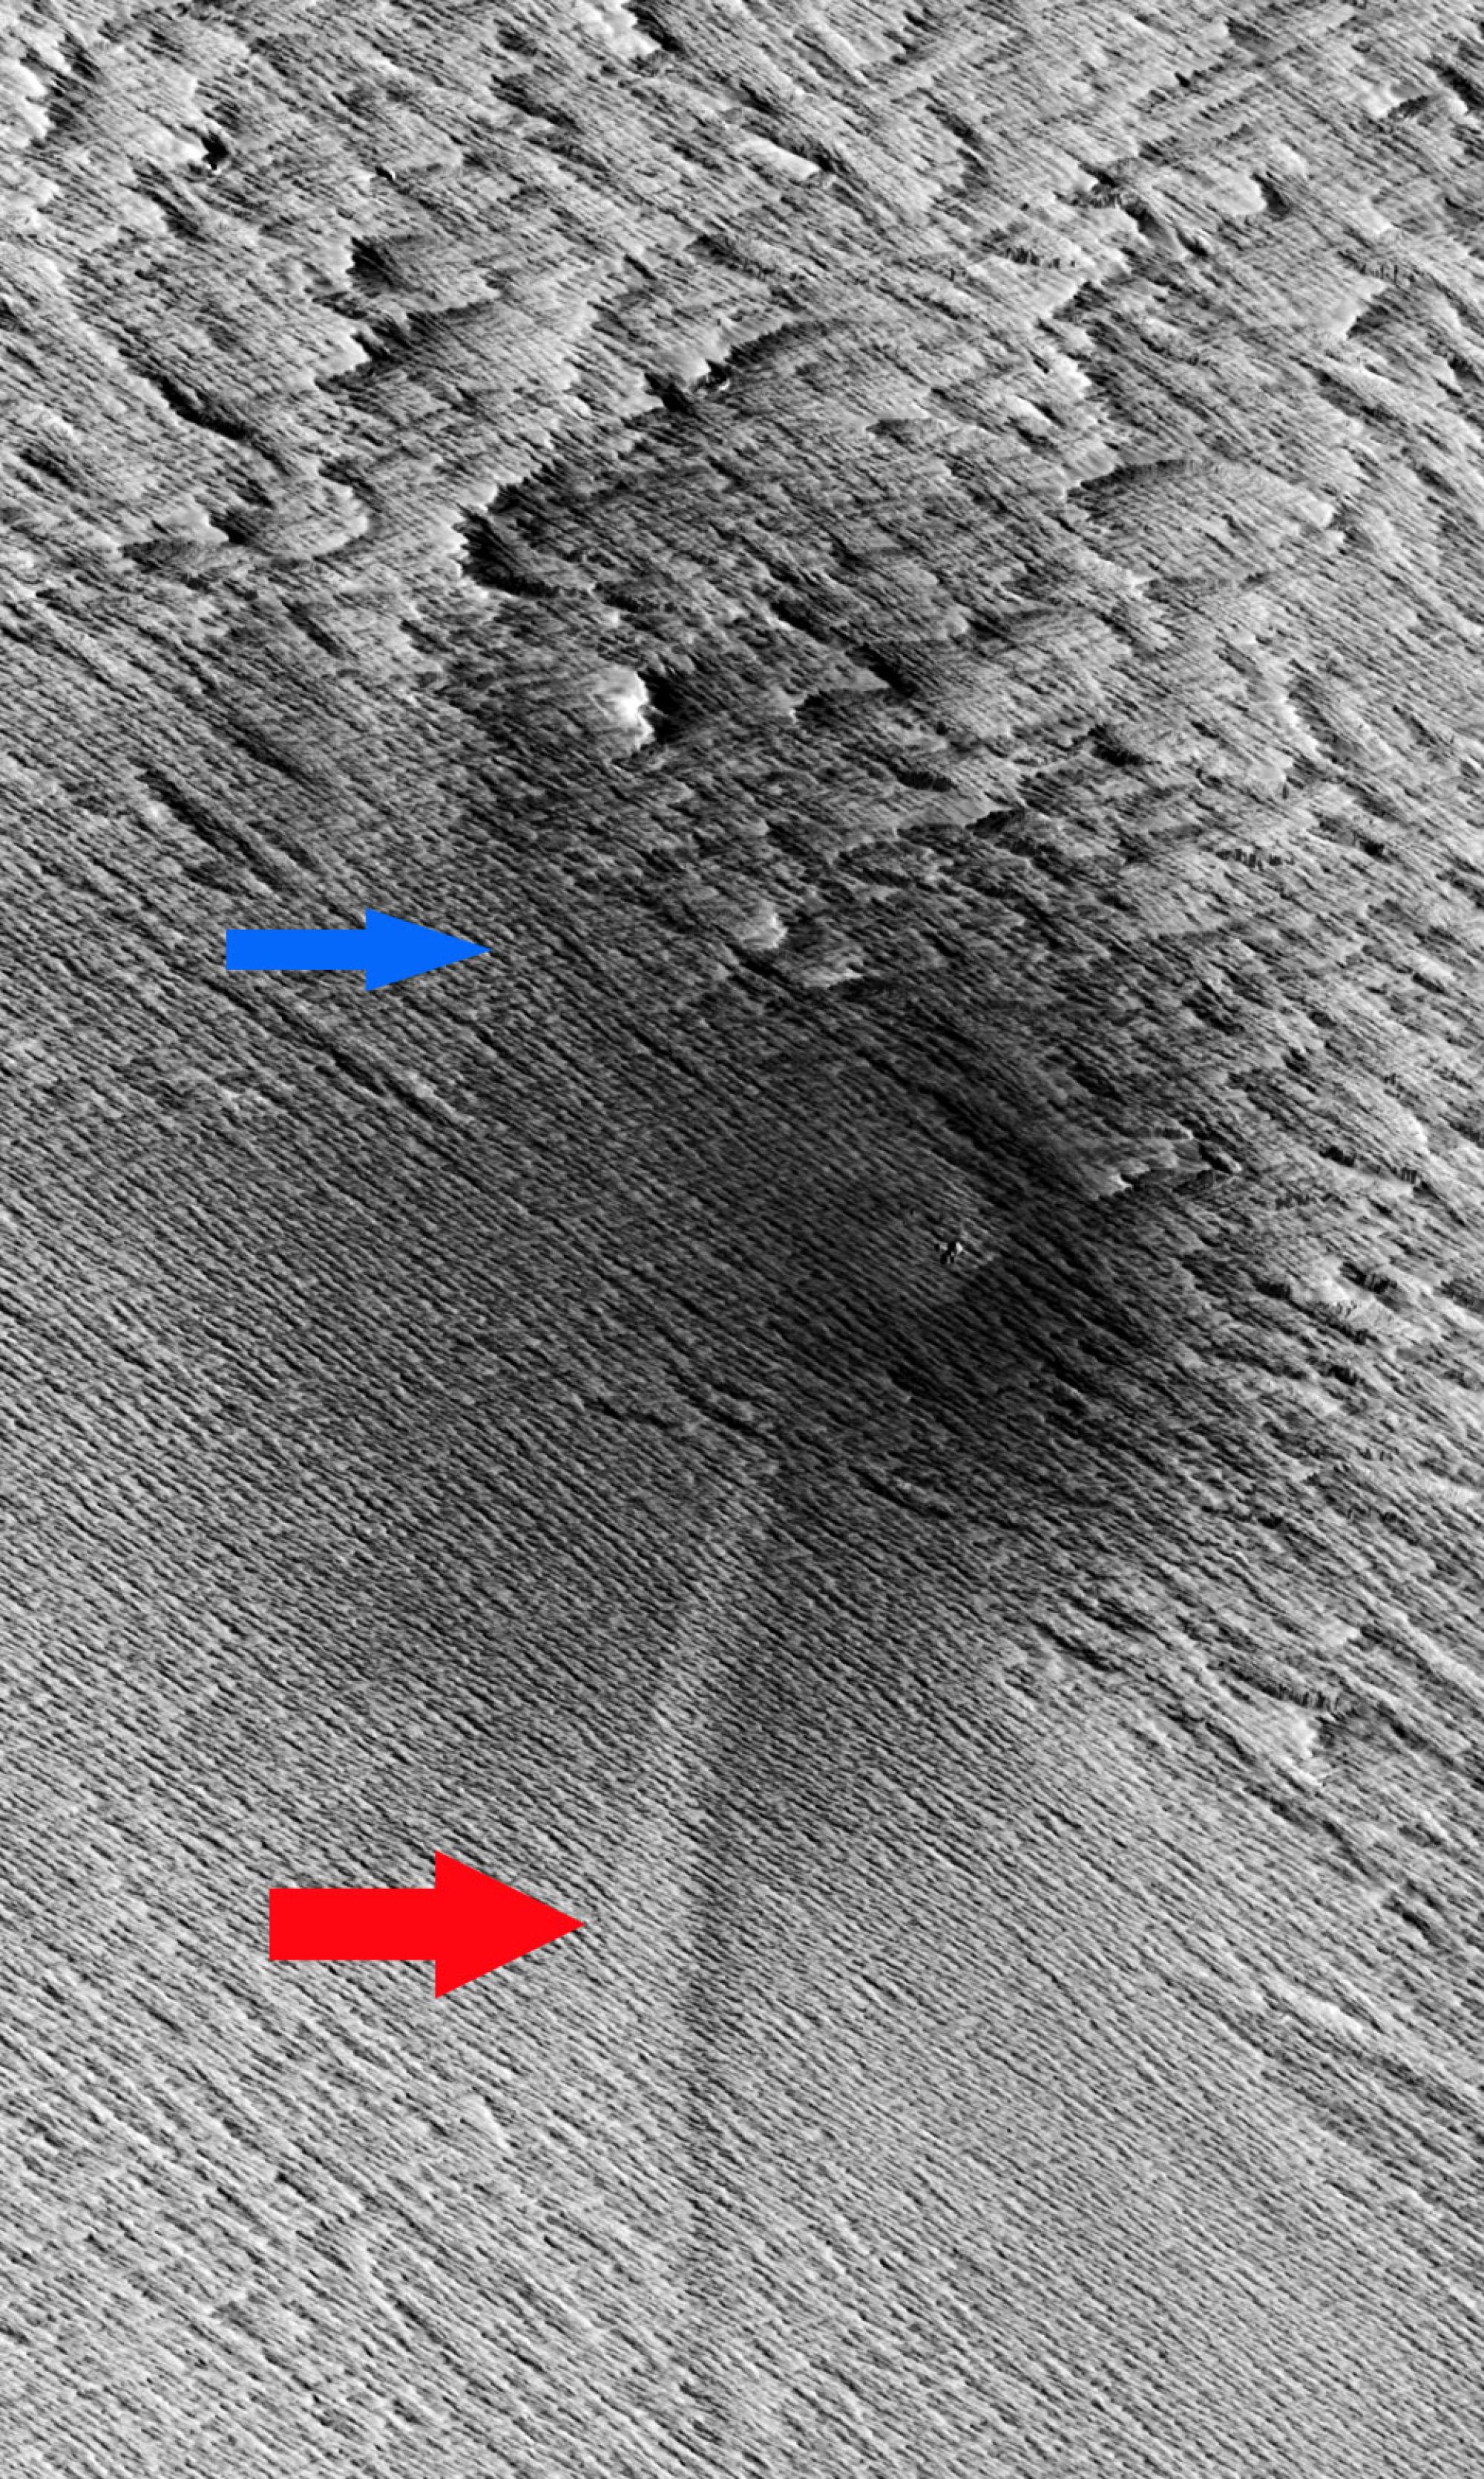 HiRISE image of the study area showing the central crater with two dagger-like features extending at an angle . Called scimitars, these features most likely resulted from shockwave interference just before impact.